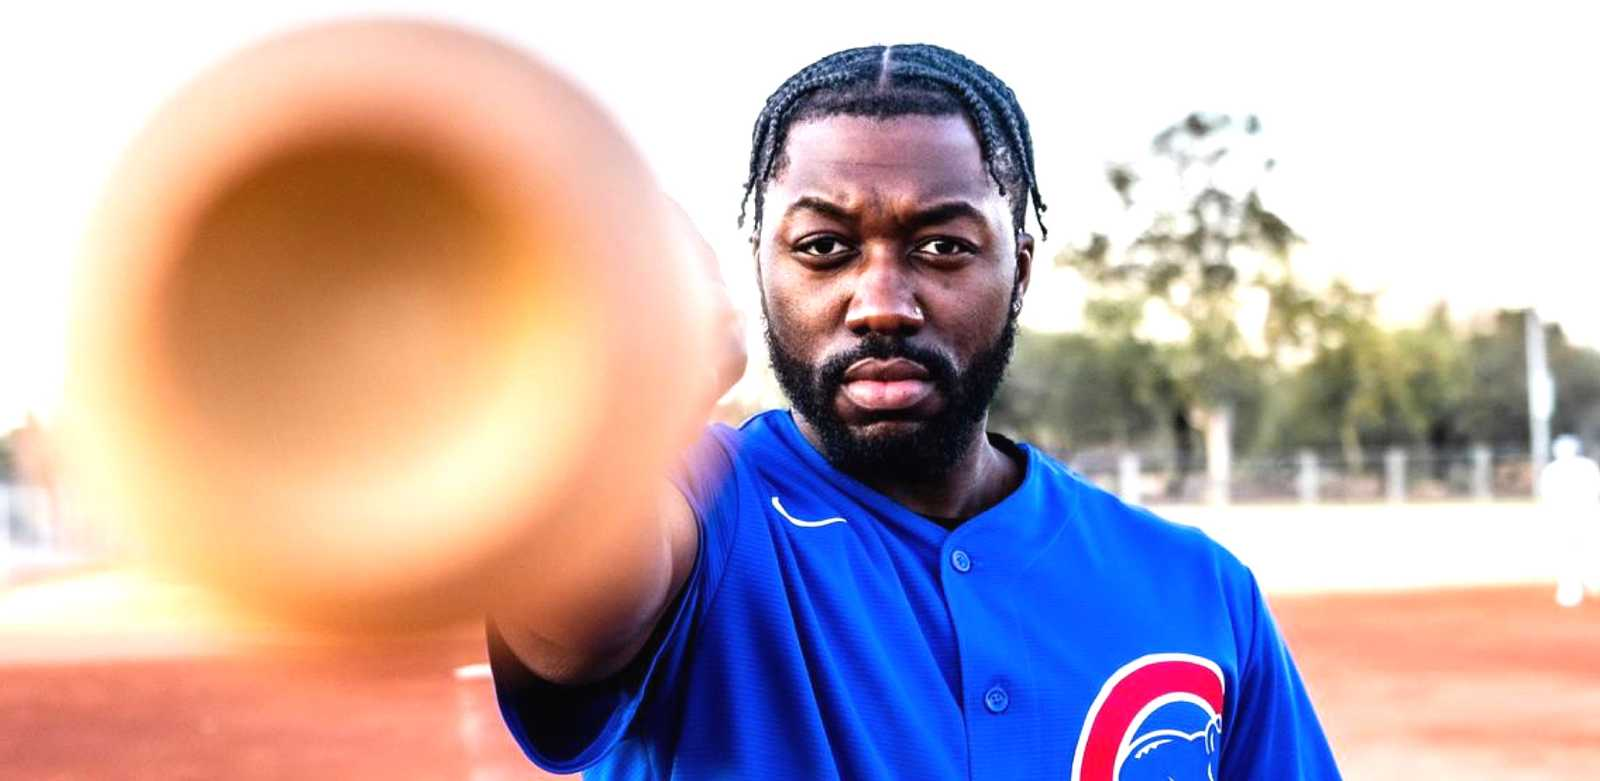 Major League Baseball collaborates with The Wild to produce lockdown YouTube series 'Bases Covered'